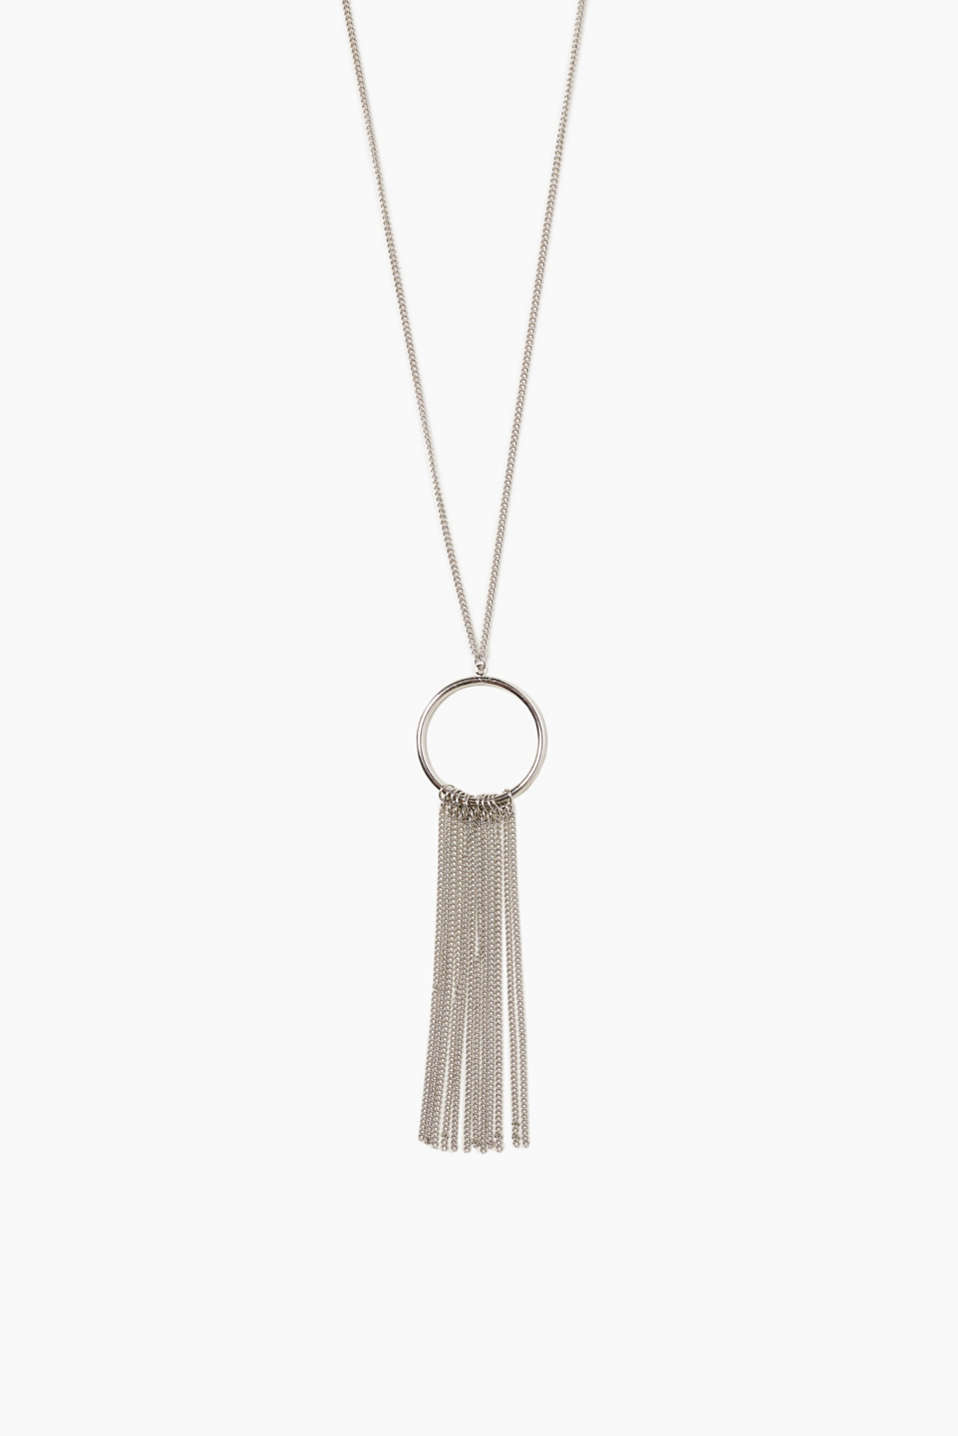 Happy hippie - that is the feeling this long metal necklace with ring pendants and fringing will give you